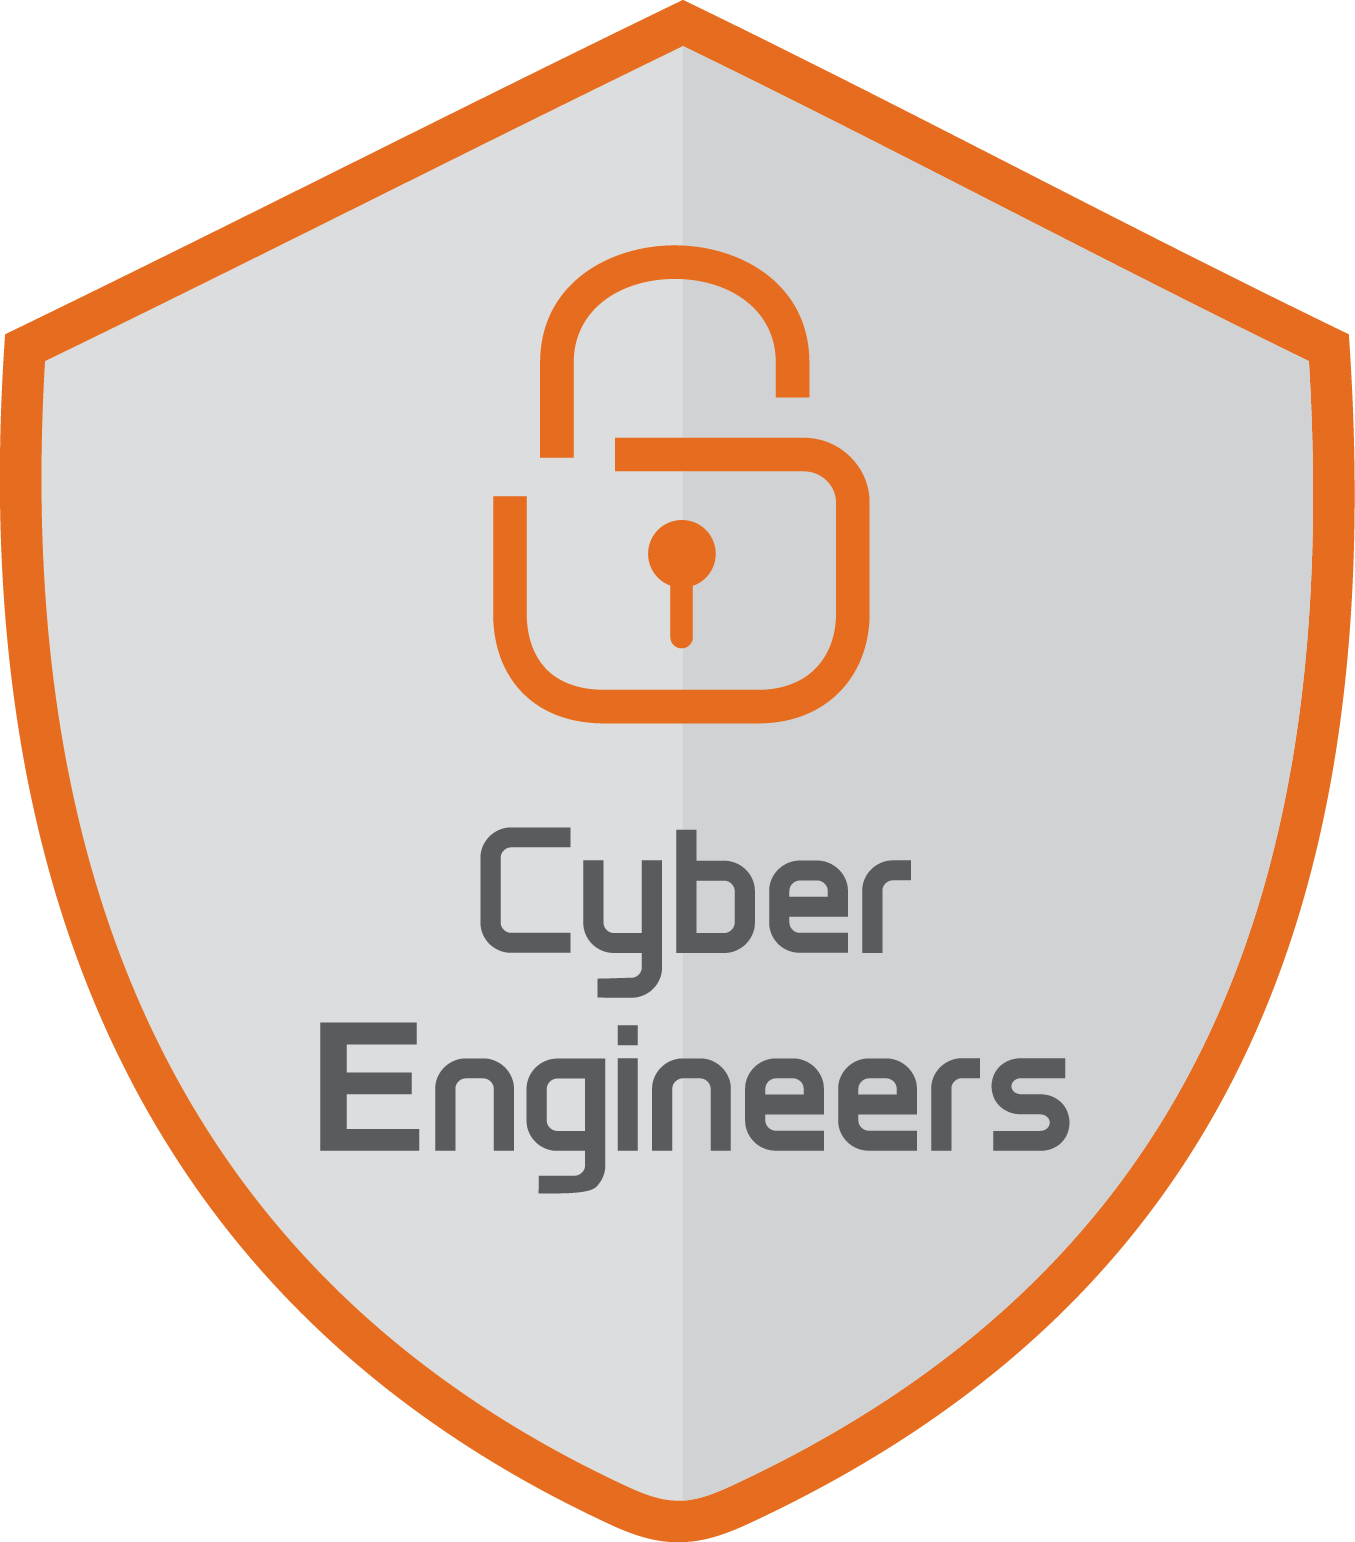 Cyber Engineers